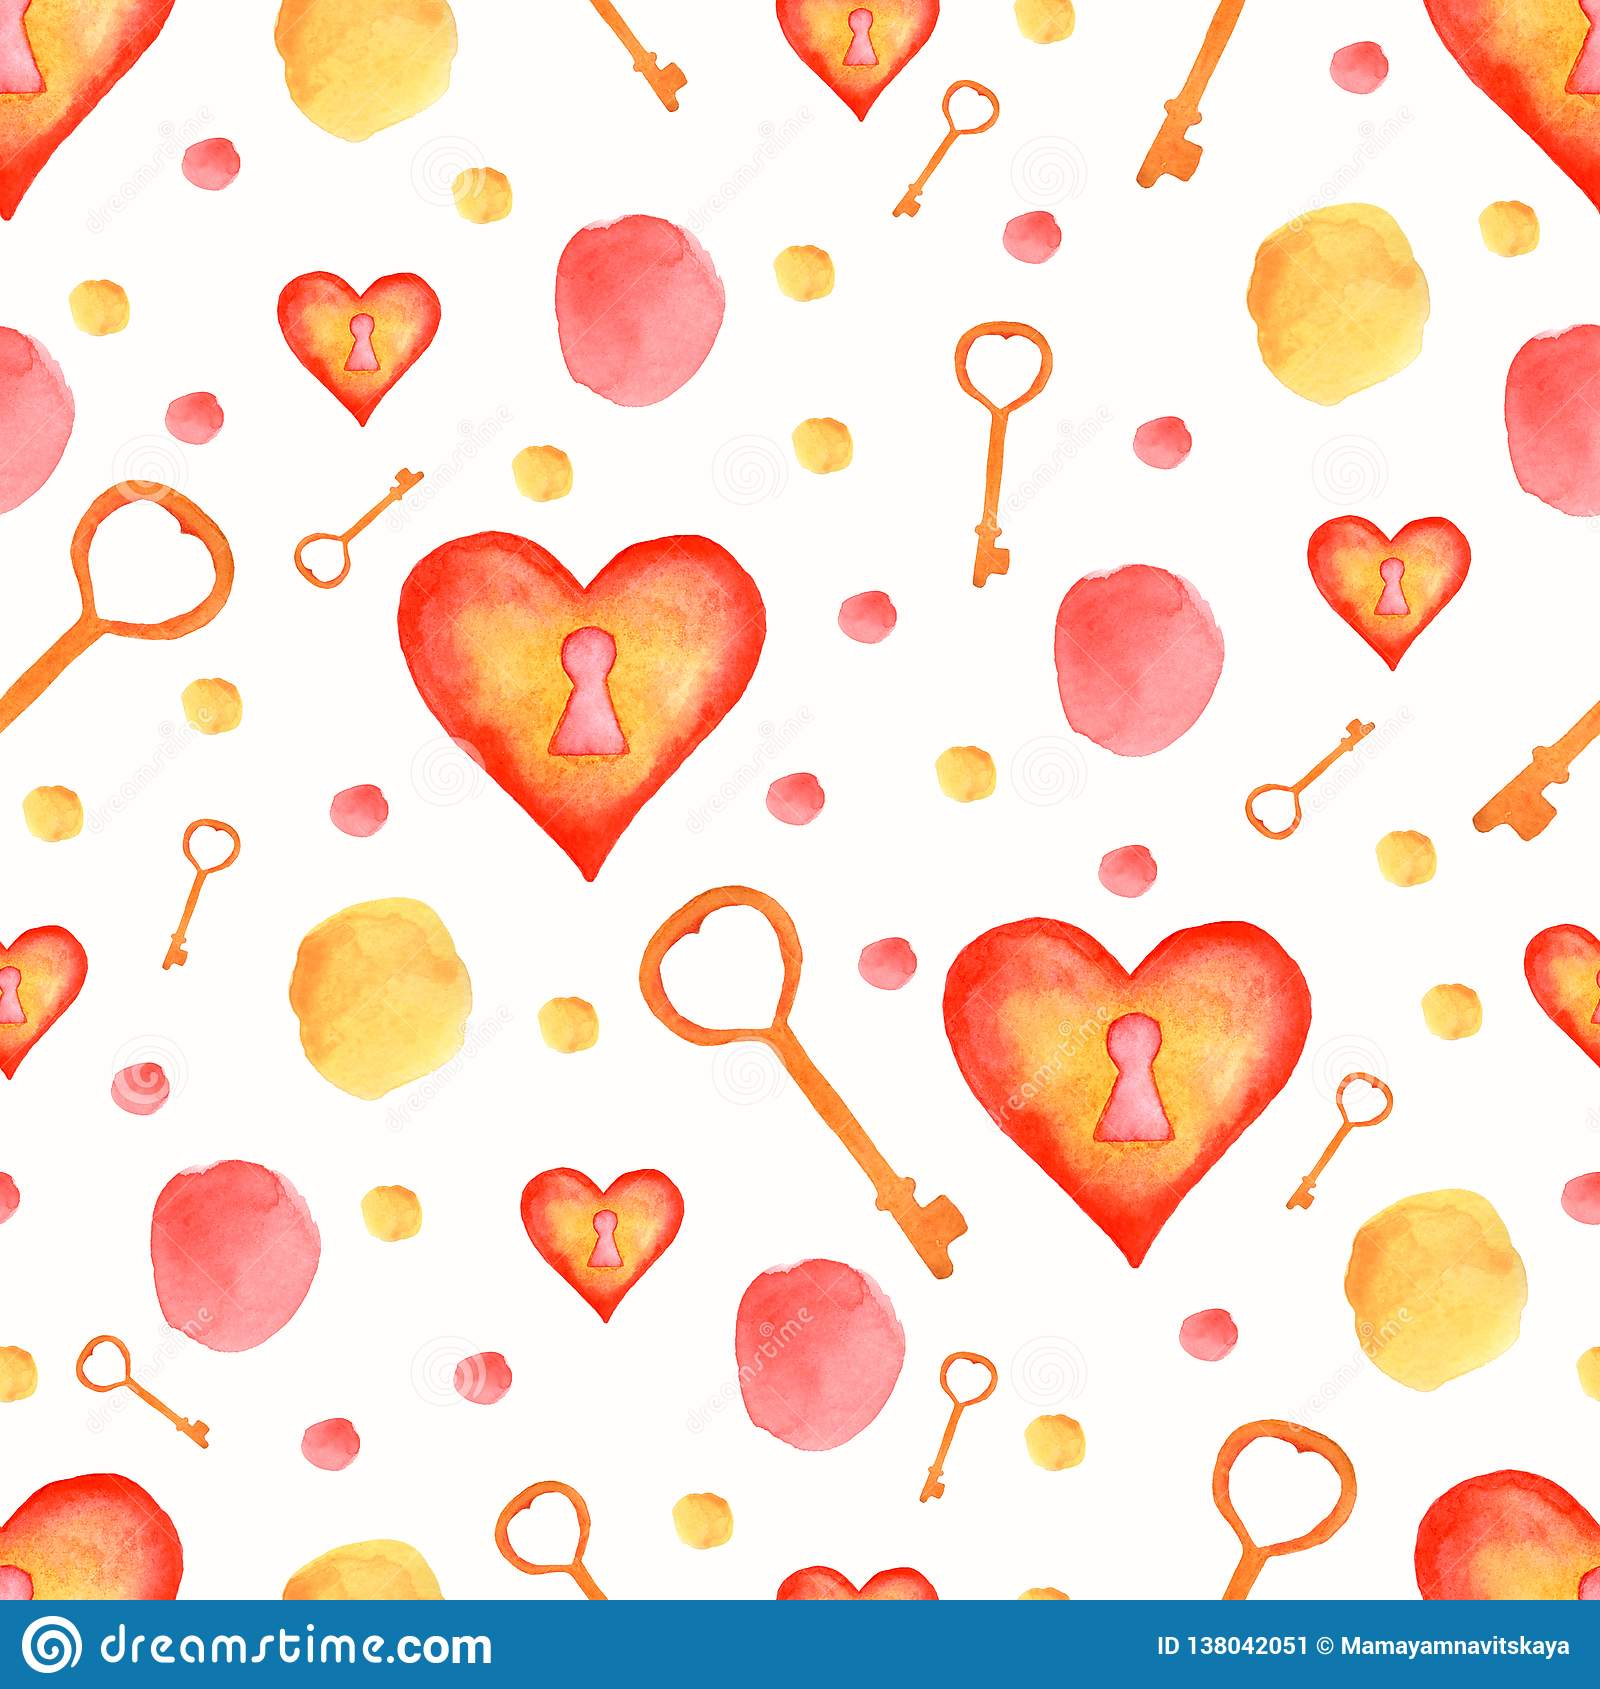 Watercolor seamless pattern with red and yellow elements.Heart lock,key,spots,polka dot. Wedding background. Watercolor texture